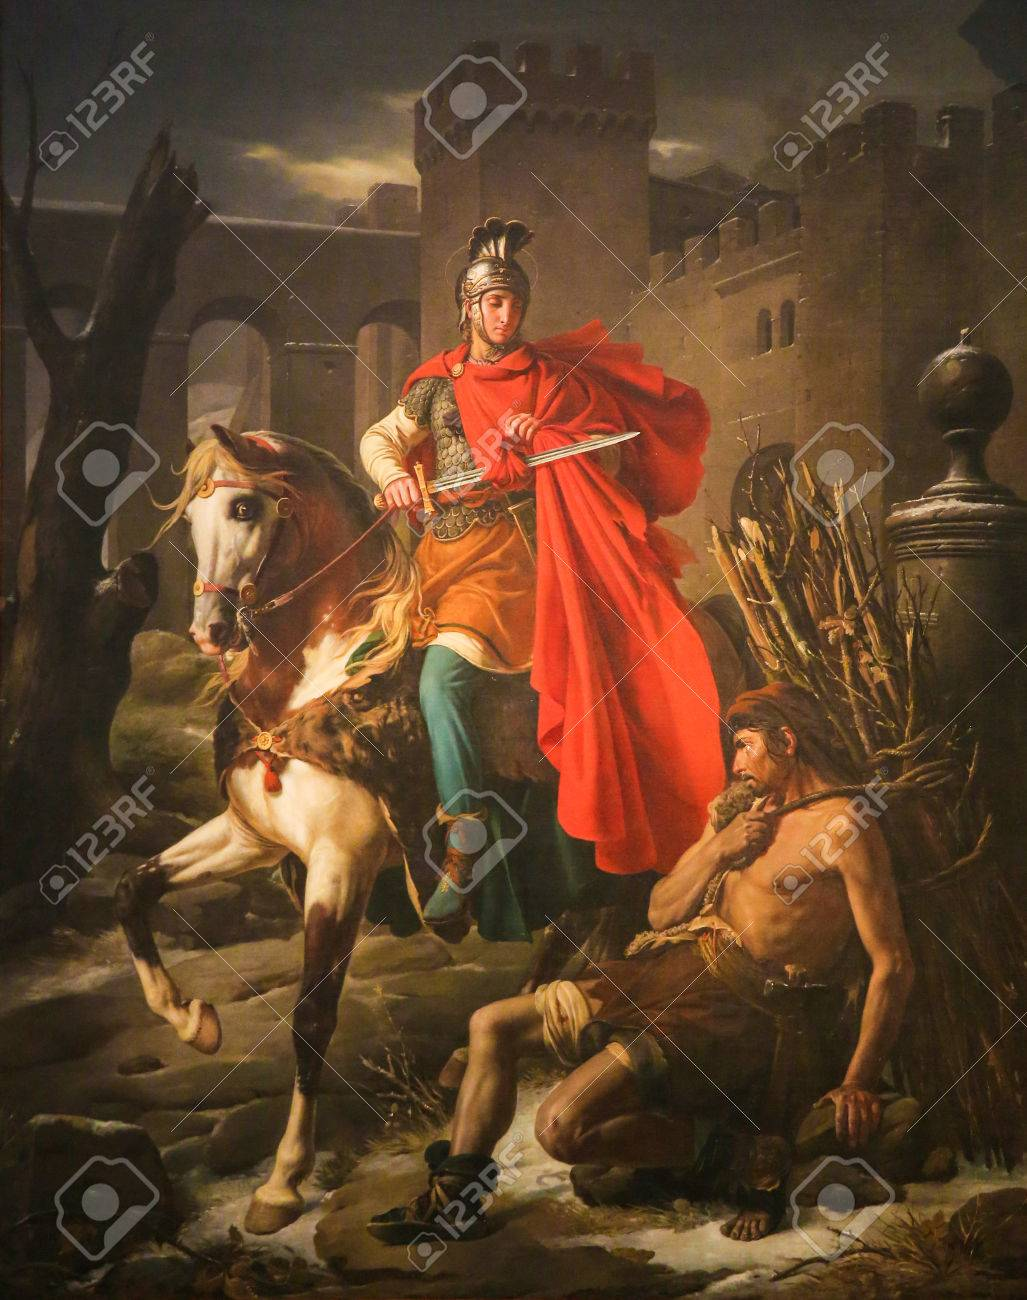 Painting depicting Saint Martin of Tours cuting a piece of his cloak in the Cathedral of Tours, France. - 47659798